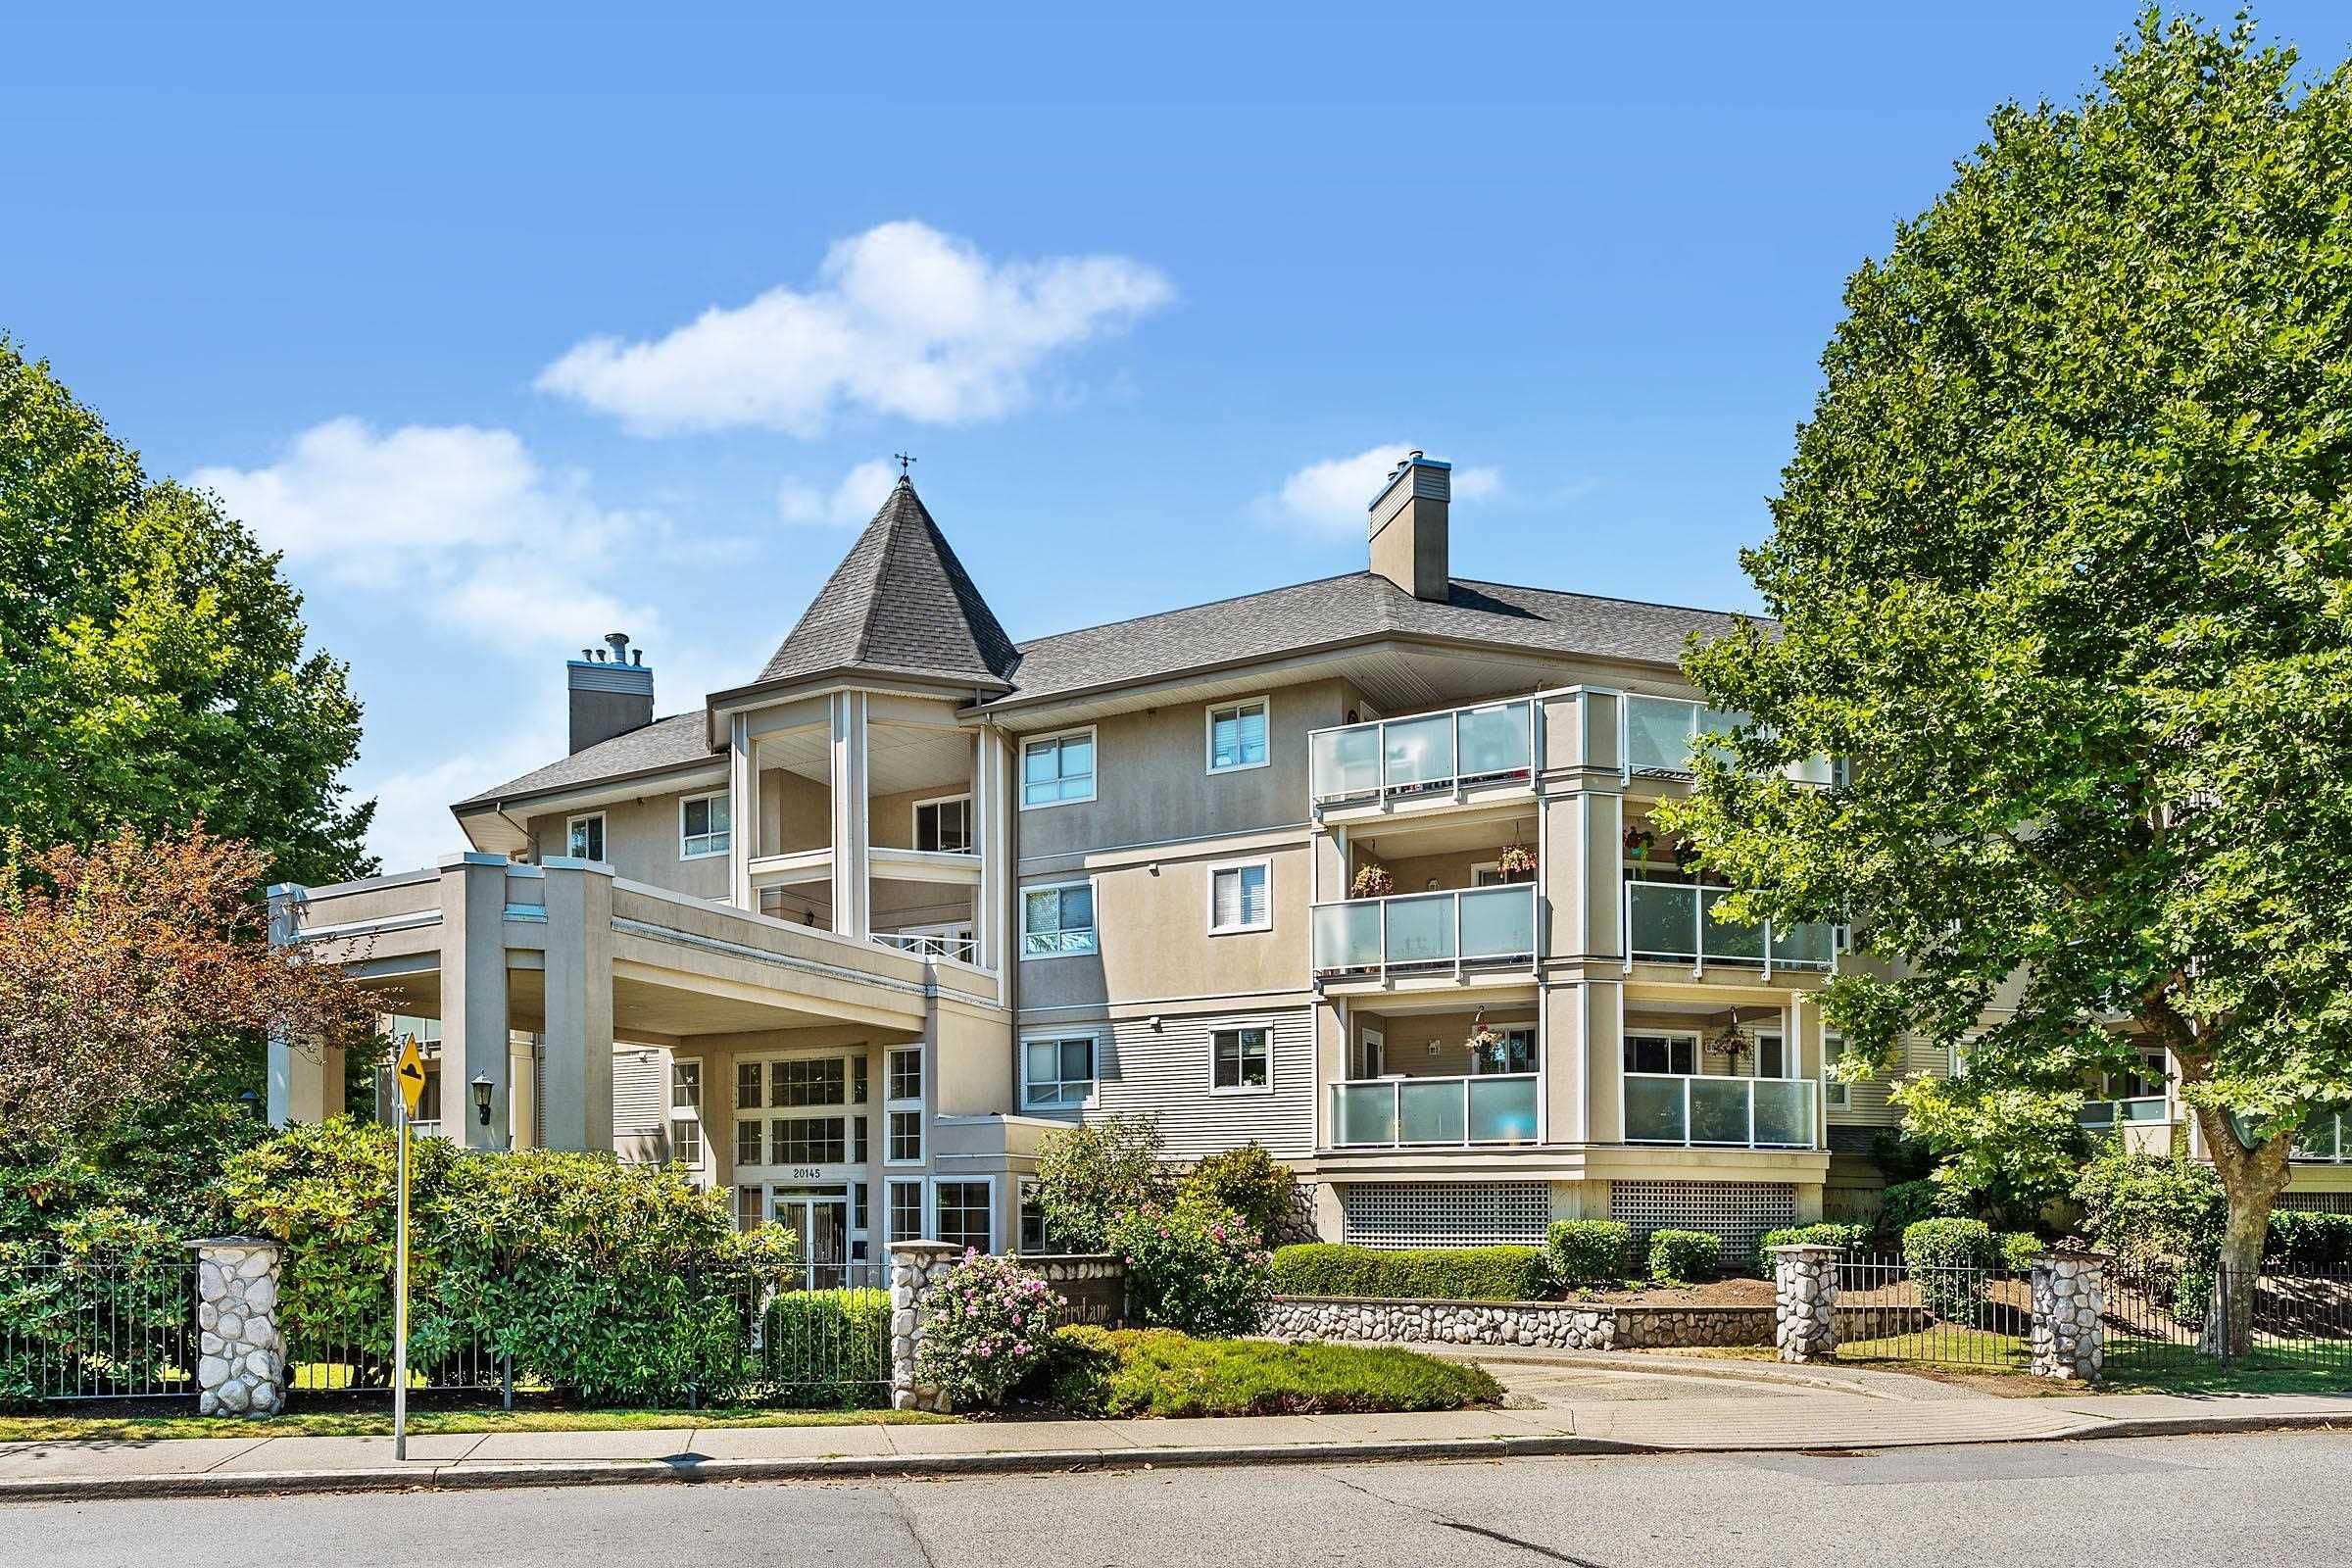 """Main Photo: 303 20145 55A Avenue in Langley: Langley City Condo for sale in """"BLACKBERRY LANE"""" : MLS®# R2609677"""